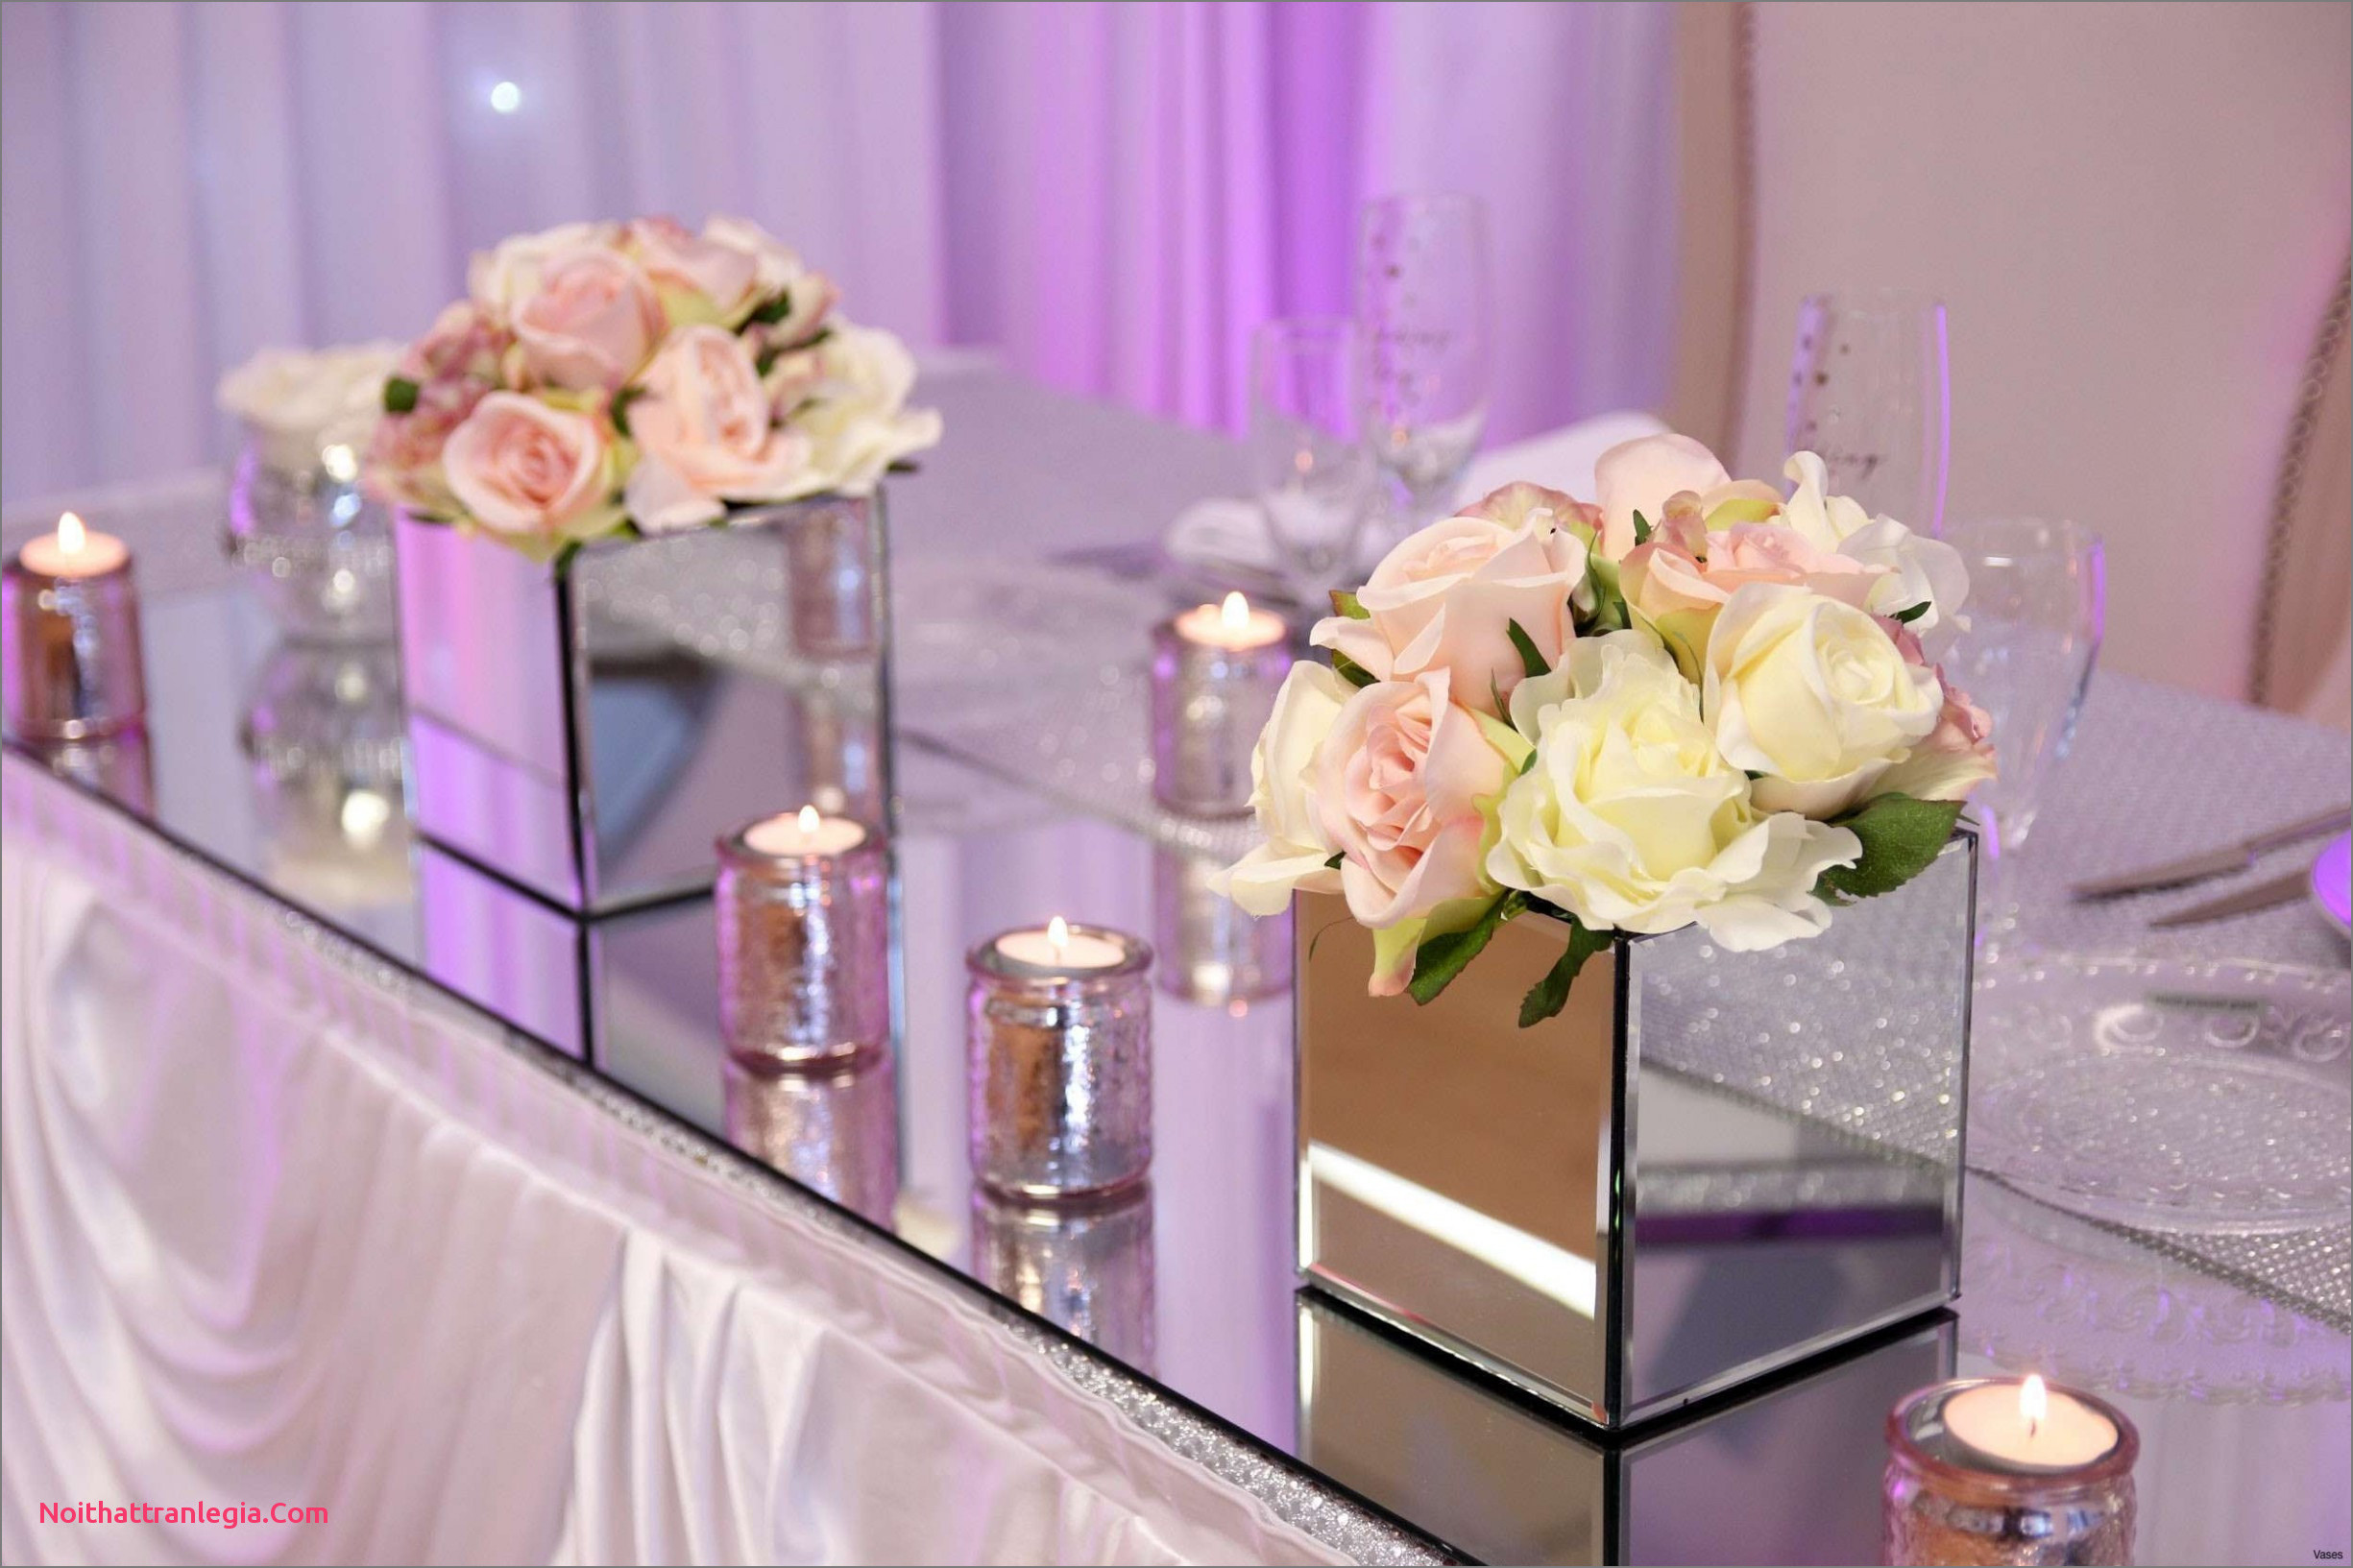 dollar store bud vases of 20 wedding vases noithattranlegia vases design with mirrored square vase 3h vases mirror table decorationi 0d weddings